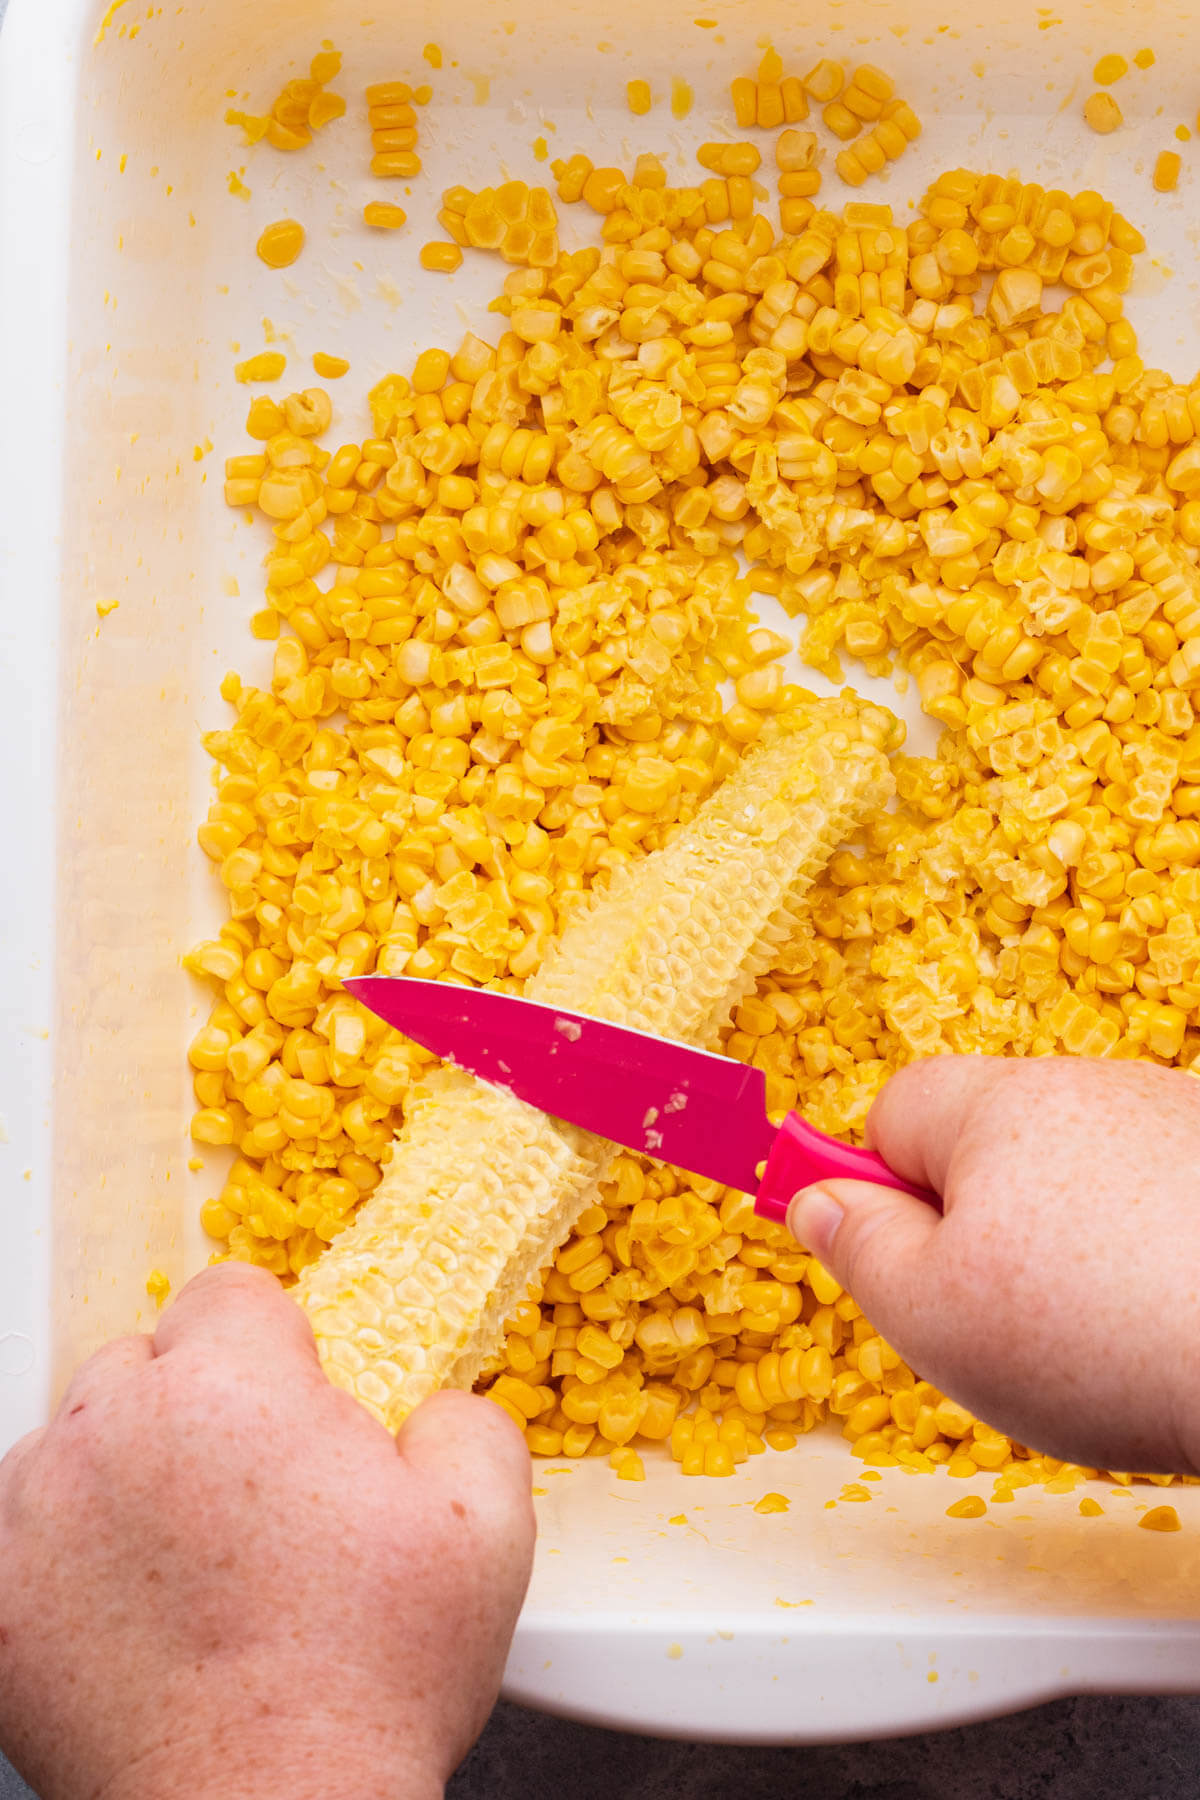 A demonstration of how to remove the 'cream' from a corn cob.